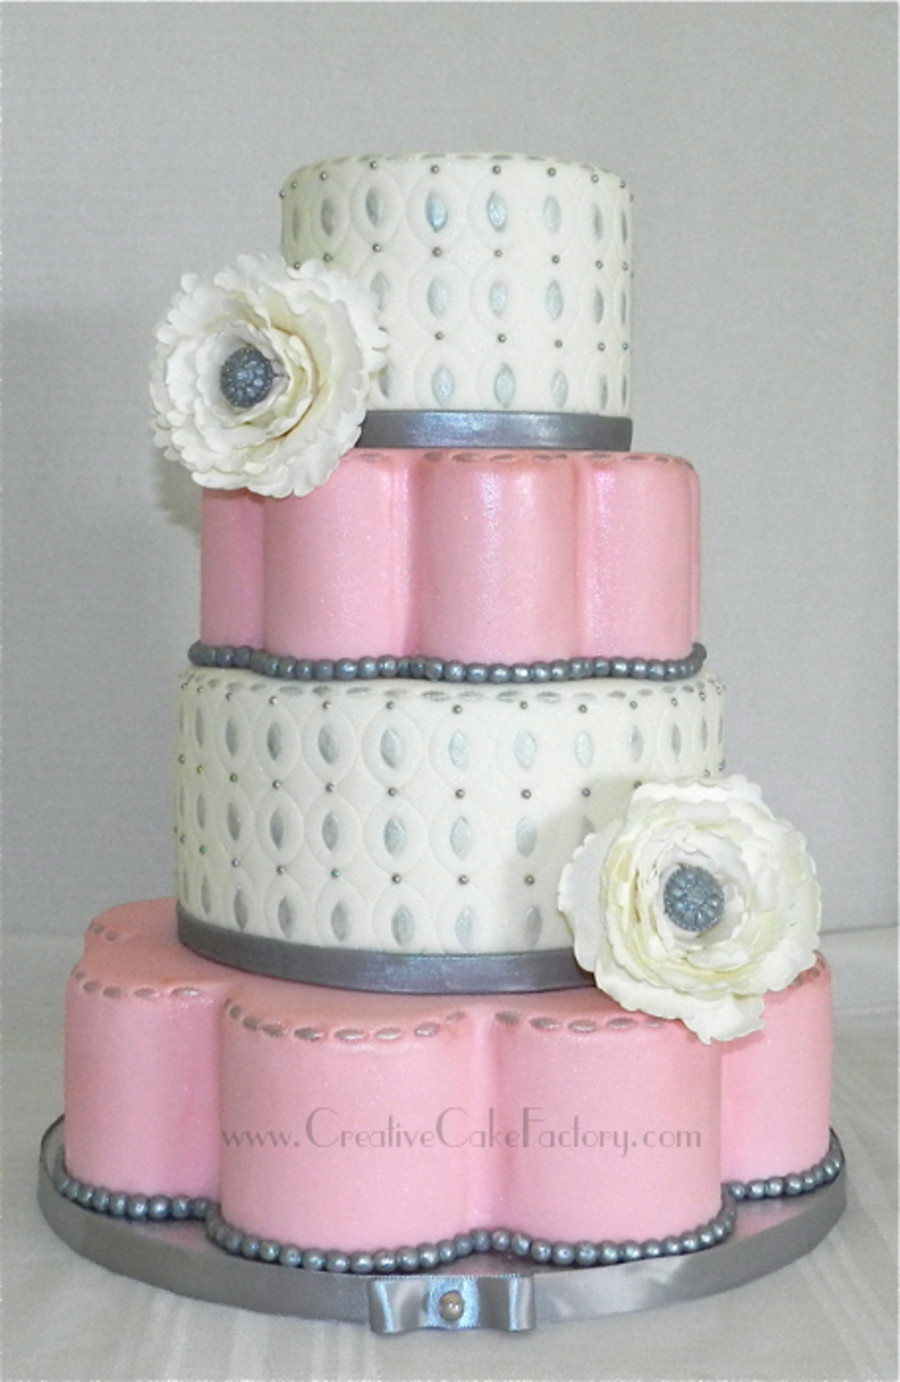 Coutoure Wedding Cakes  Couture Wedding Cake CakeCentral